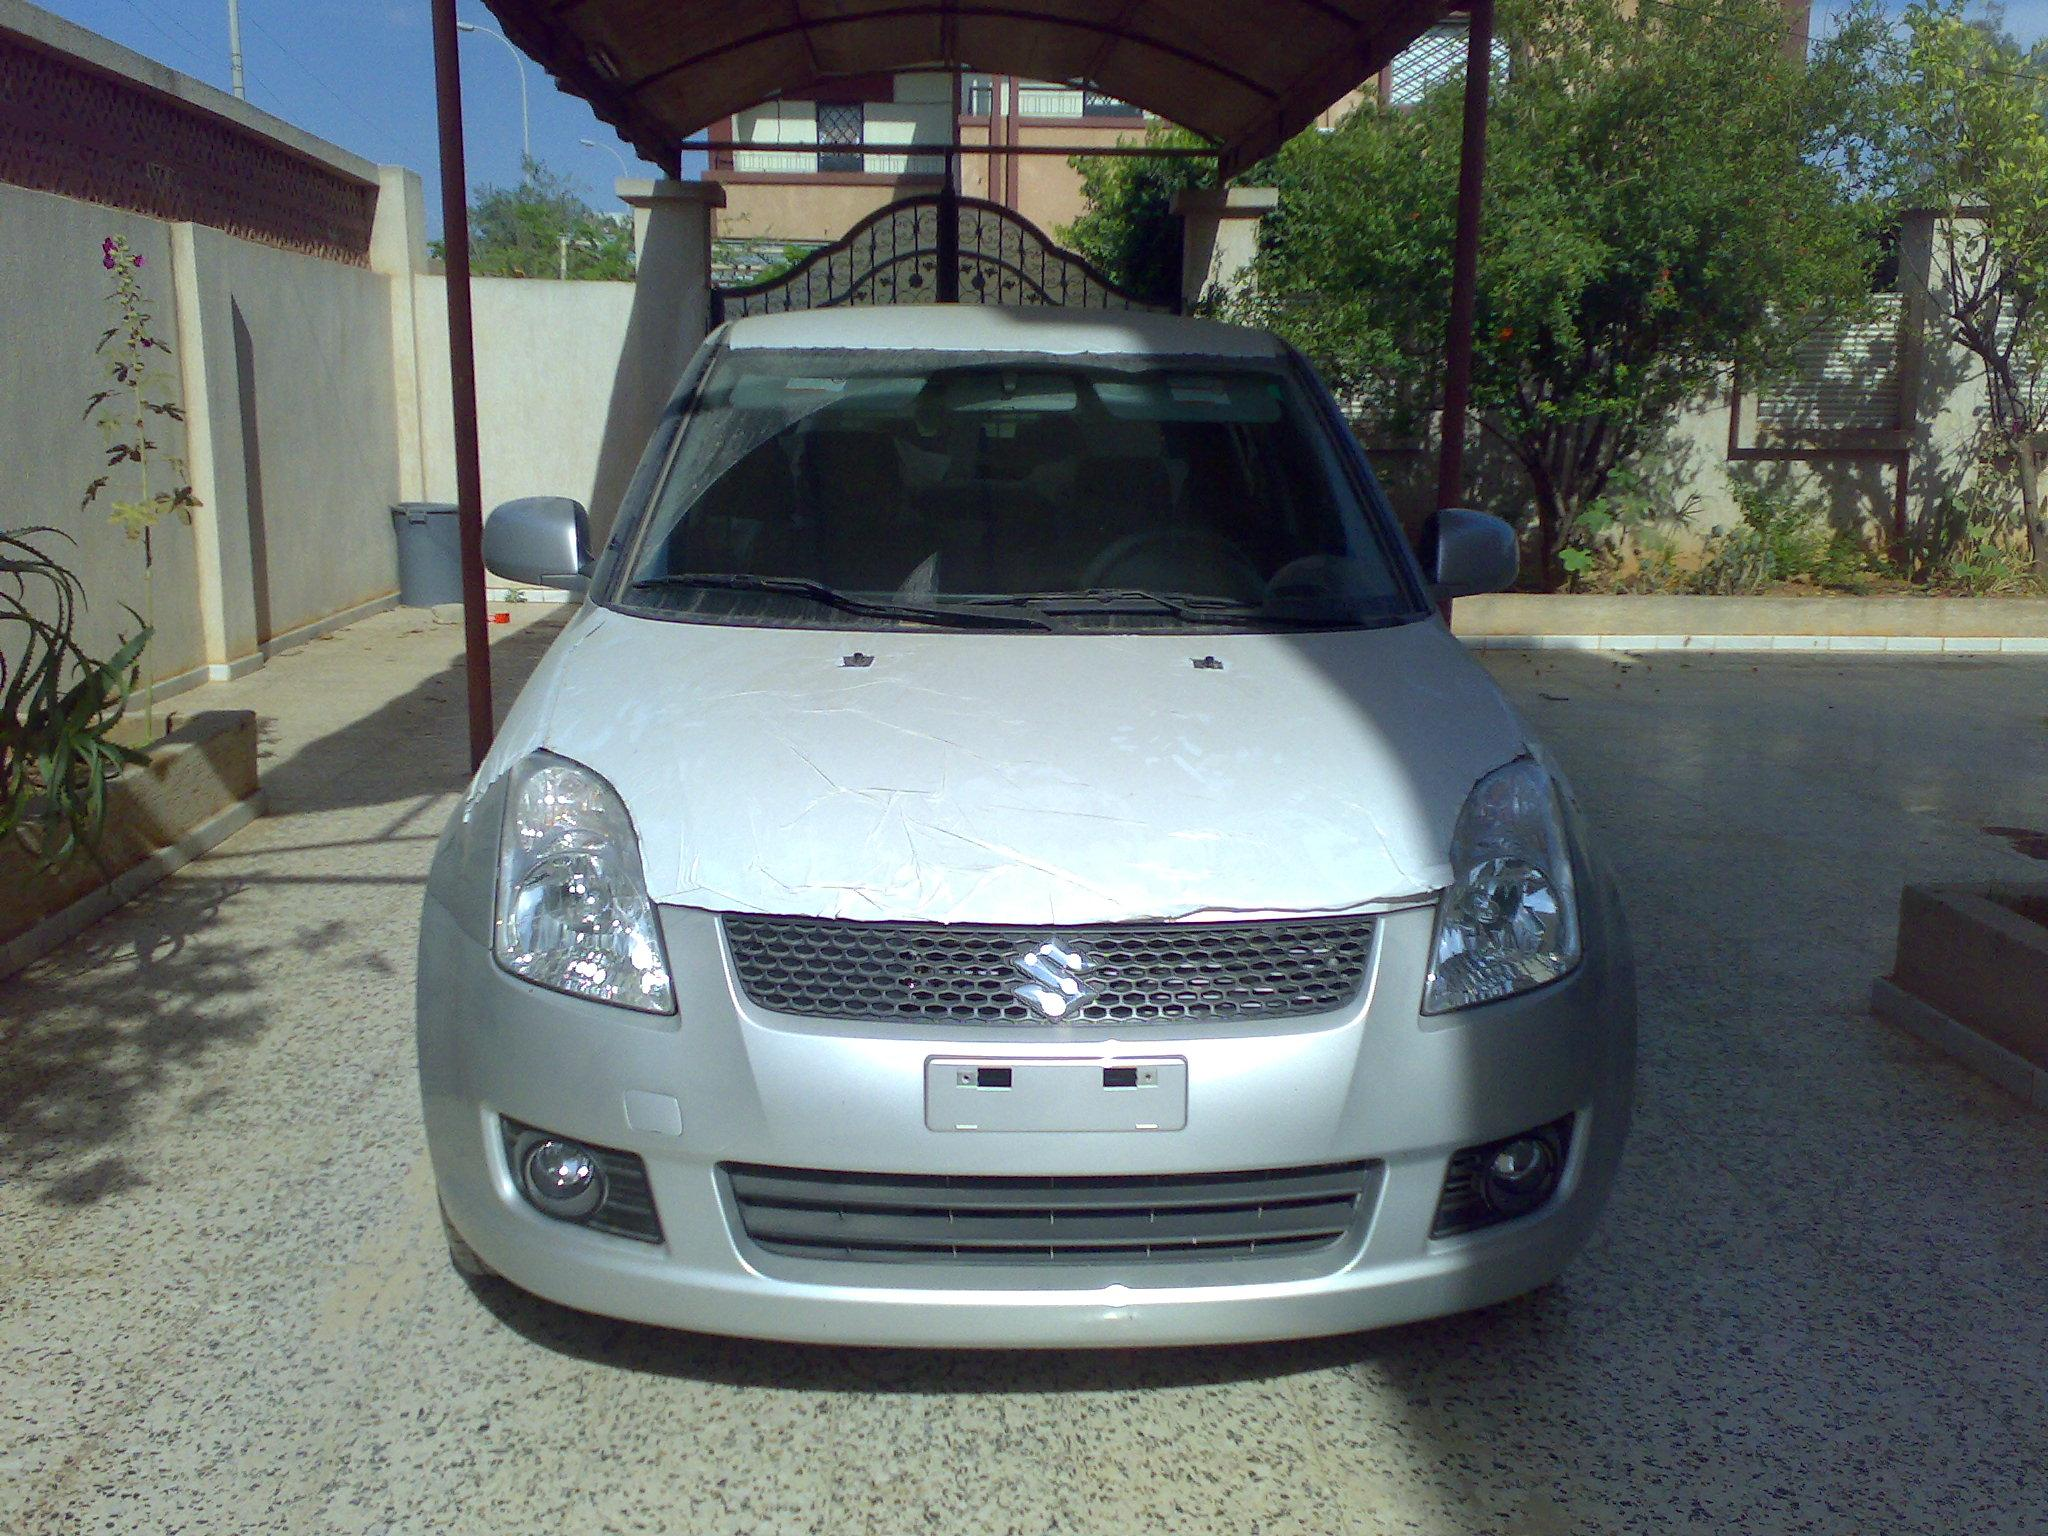 sportevo2513 2007 Suzuki Swift 15240924